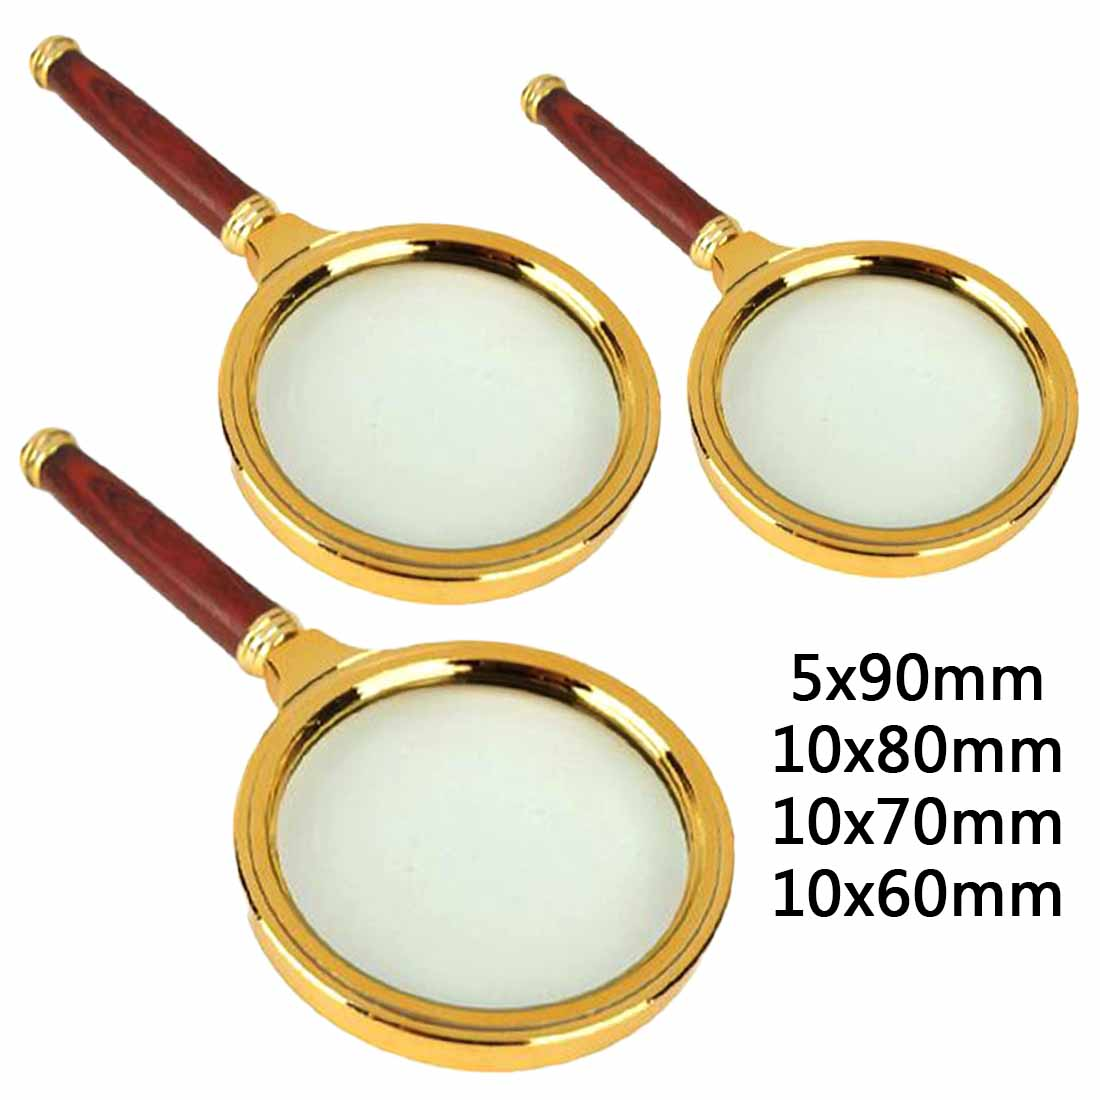 Repair Tool 90mm/80mm/70mm/60mm Handheld 5X/10X Magnifier Magnifying Glass Loupe Reading Jewelry Eye Loupe Magnifier 10x magnifying glass 60mm portable handheld magnifier for jewelry newspaper book reading high definition eye loupe glass